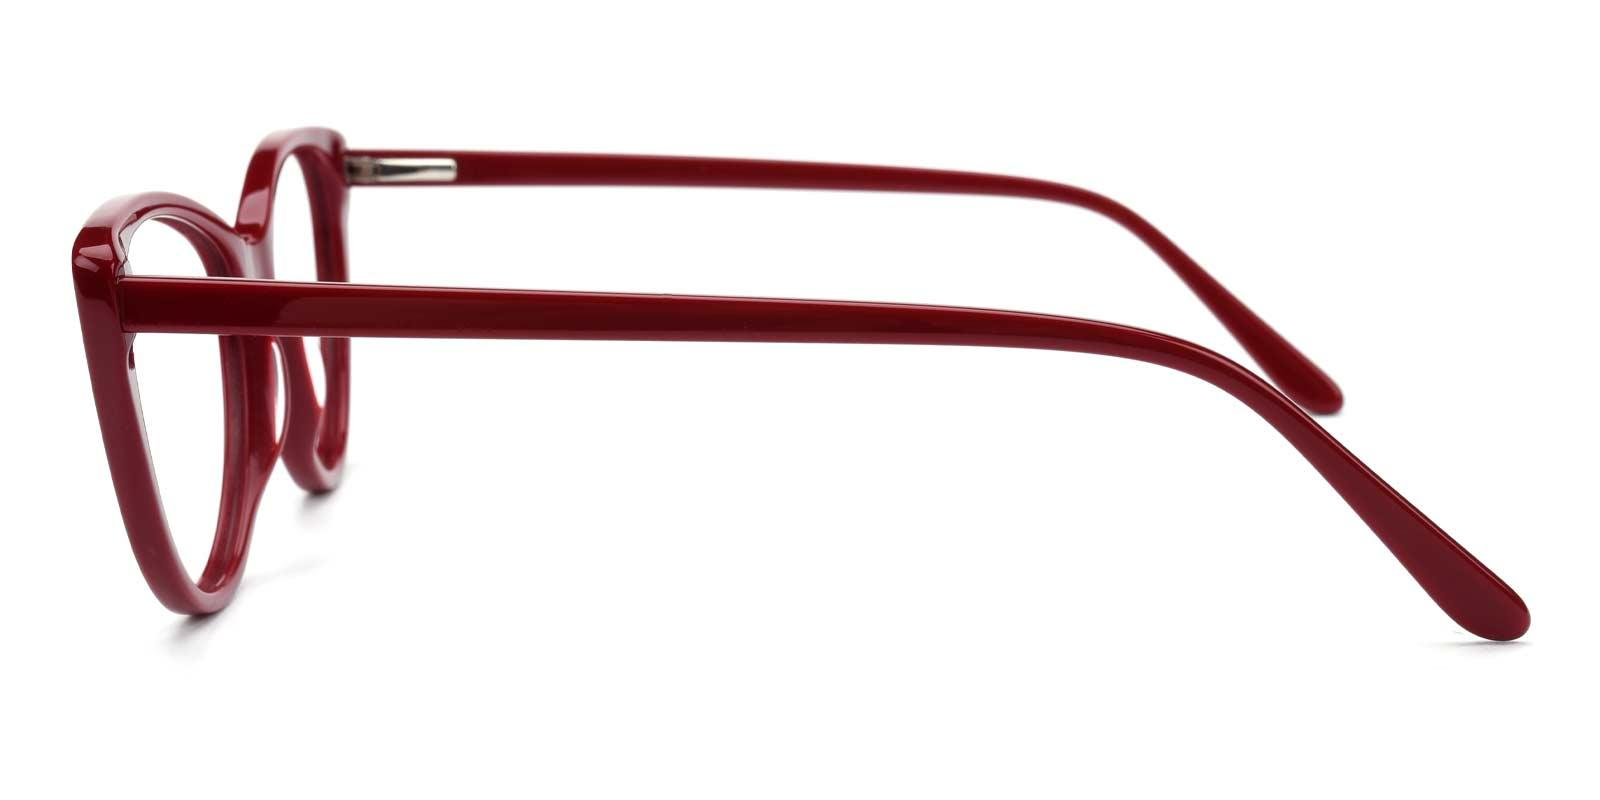 Law-Red-Cat-Acetate-Eyeglasses-additional3